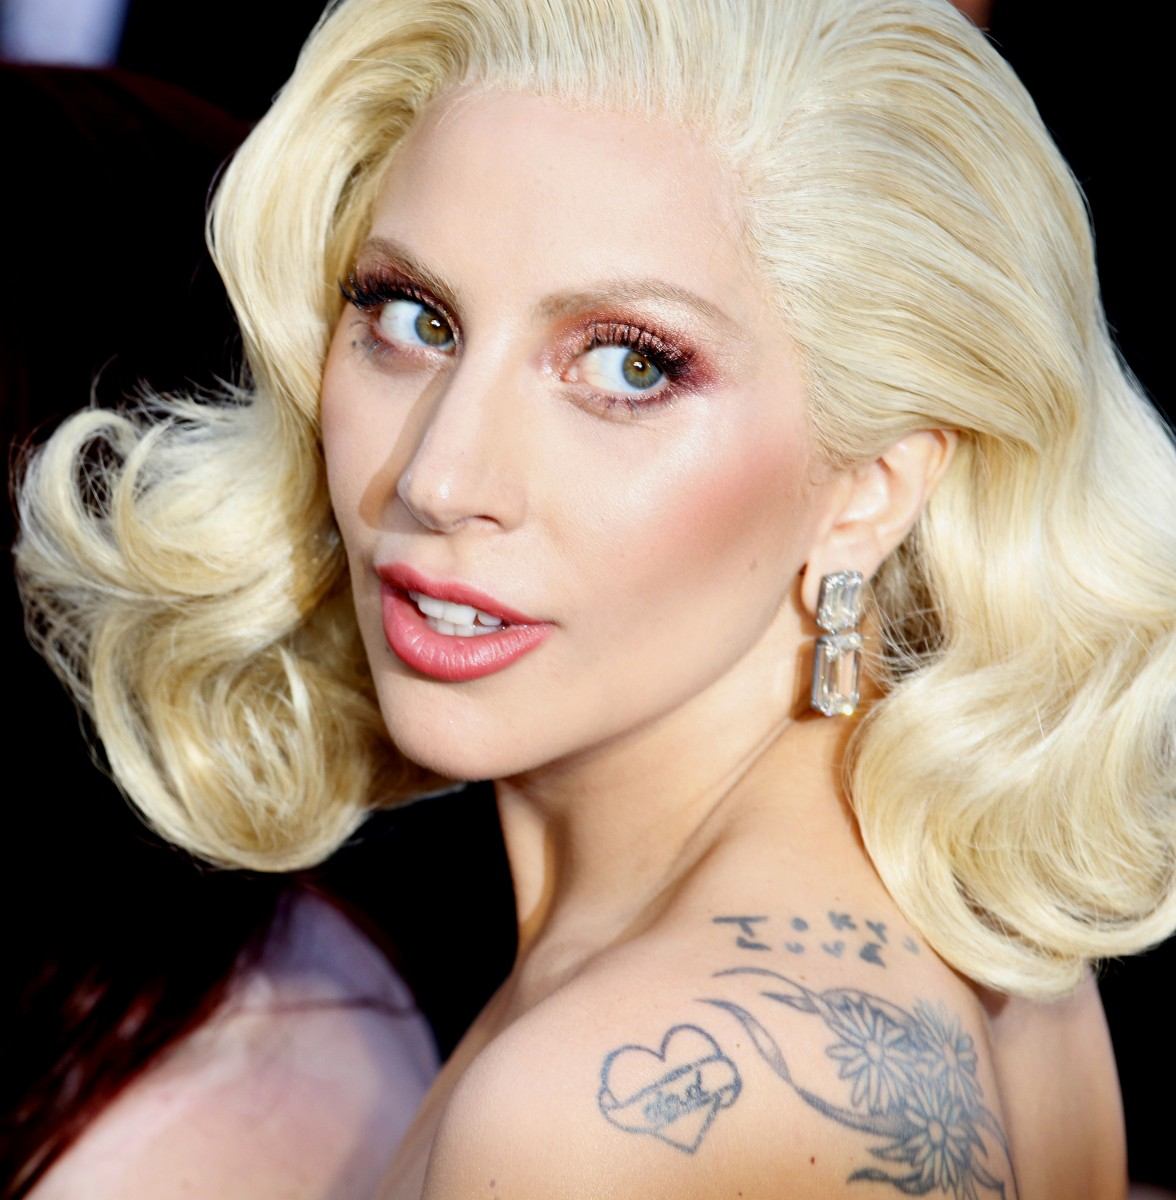 Lady Gaga at the 88th Annual Academy Awards held at the Hollywood & Highland Center in Hollywood, USA on February 28, 2016. (Photo by Tinseltown Editorial Credit: Tinseltown / Shutterstock.com